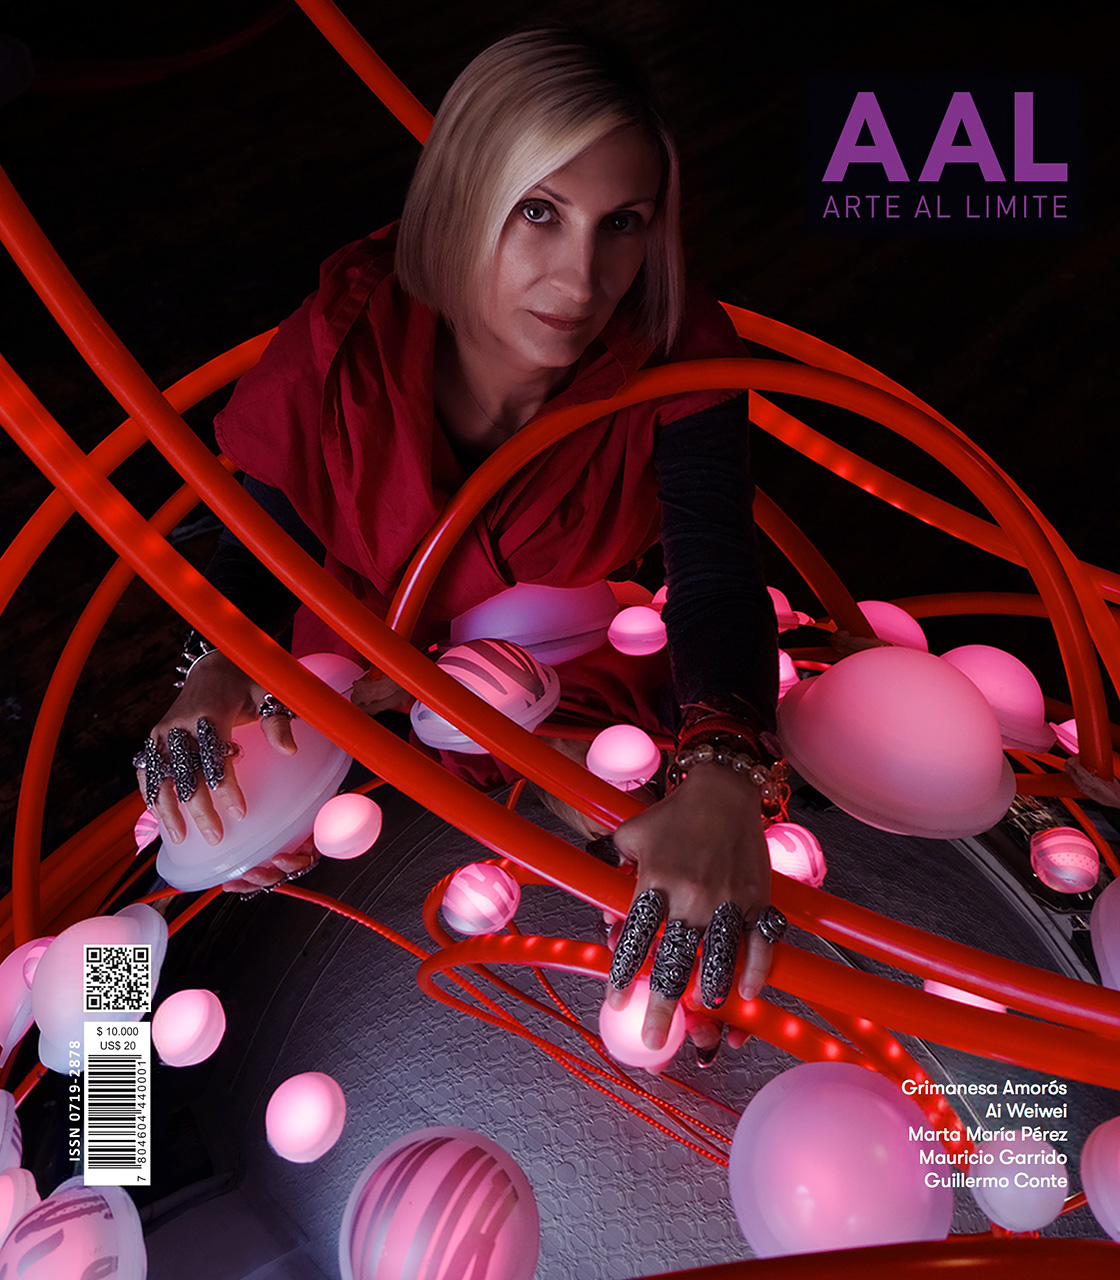 grimanesa amoros arte al limite revista 92 cover feature light artwork lotus